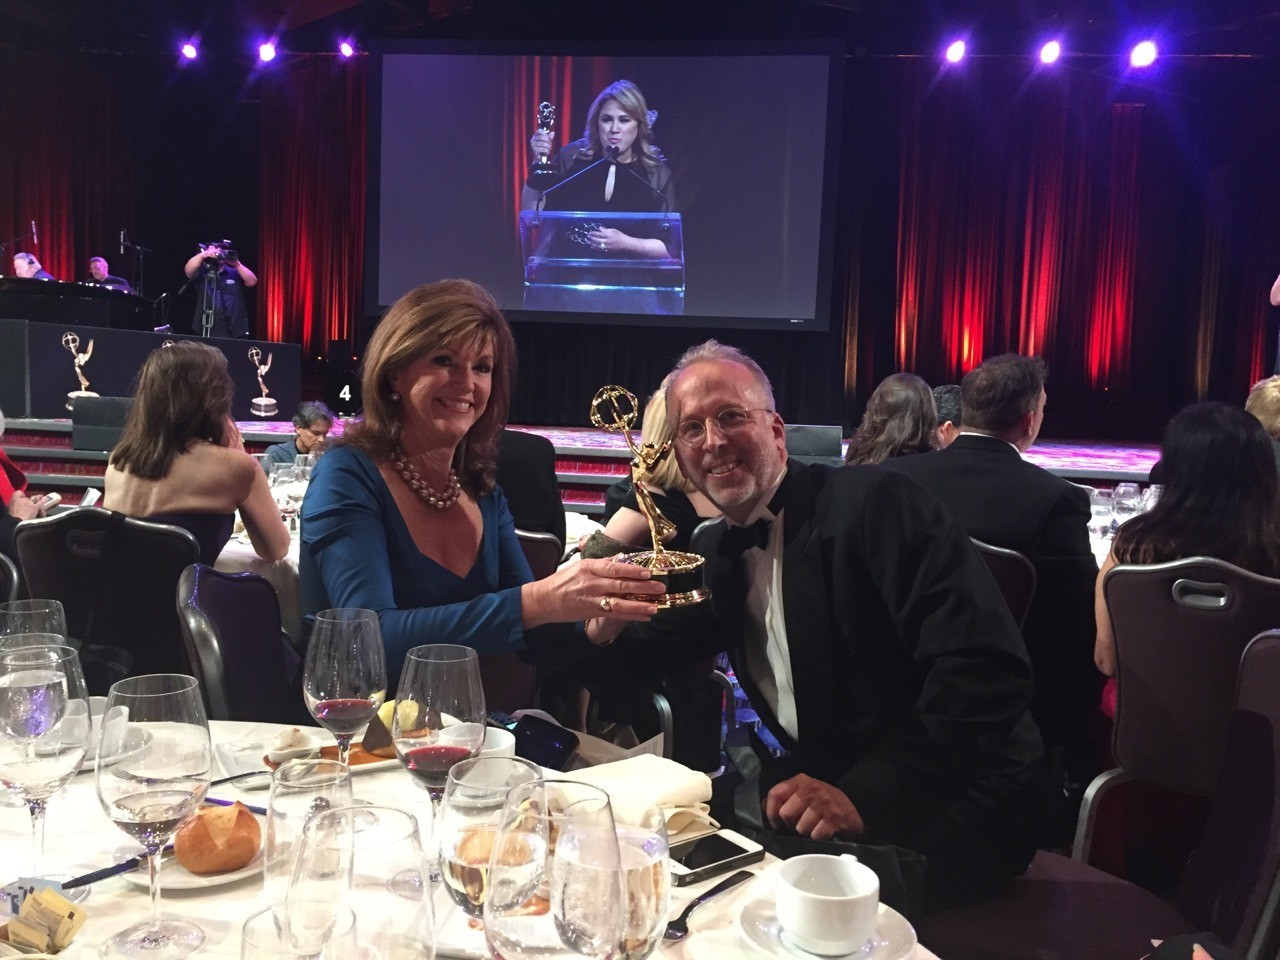 ASO Executive Director Paul Schwendener and Vice President of the board Susan Hutchison after the EMMY win.